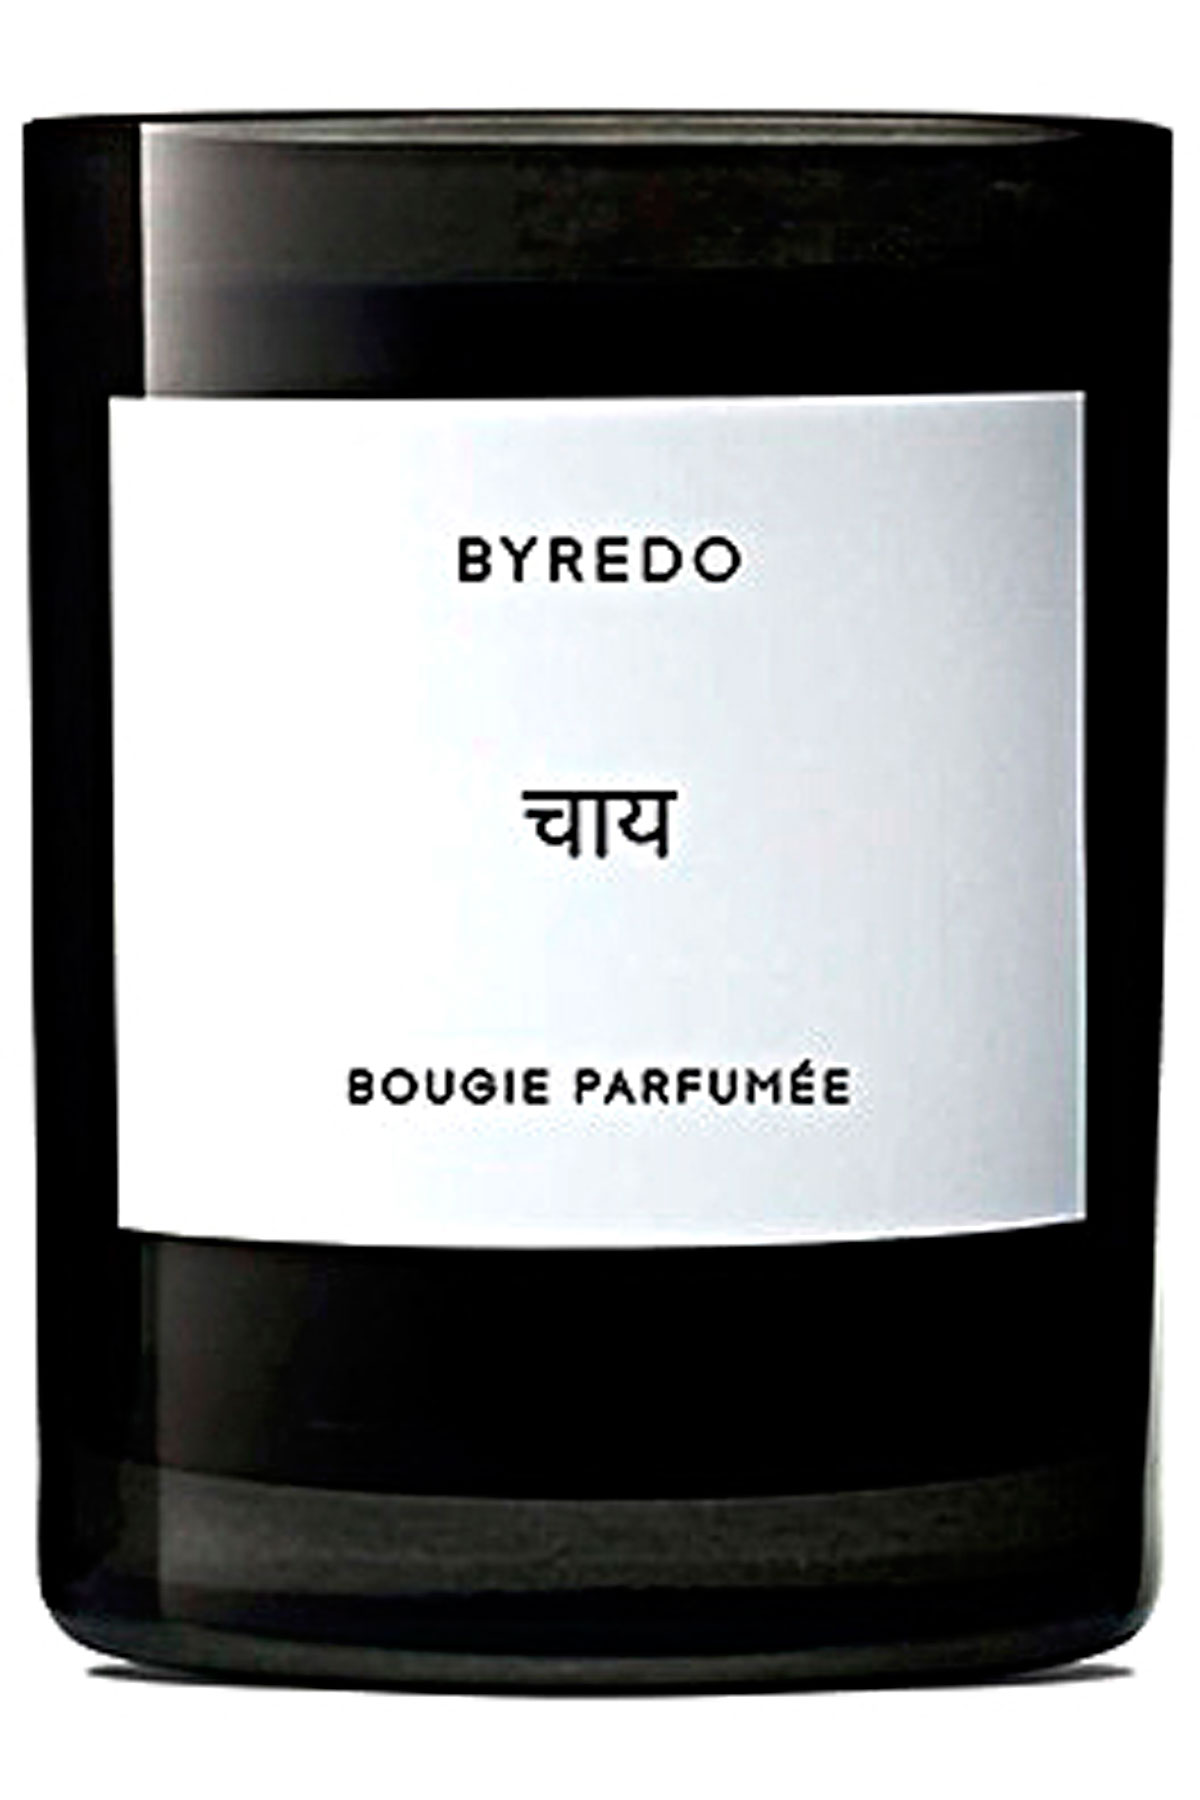 Byredo Home Scents for Women On Sale, Chai - Candle - 240 Gr, 2019, 240 gr